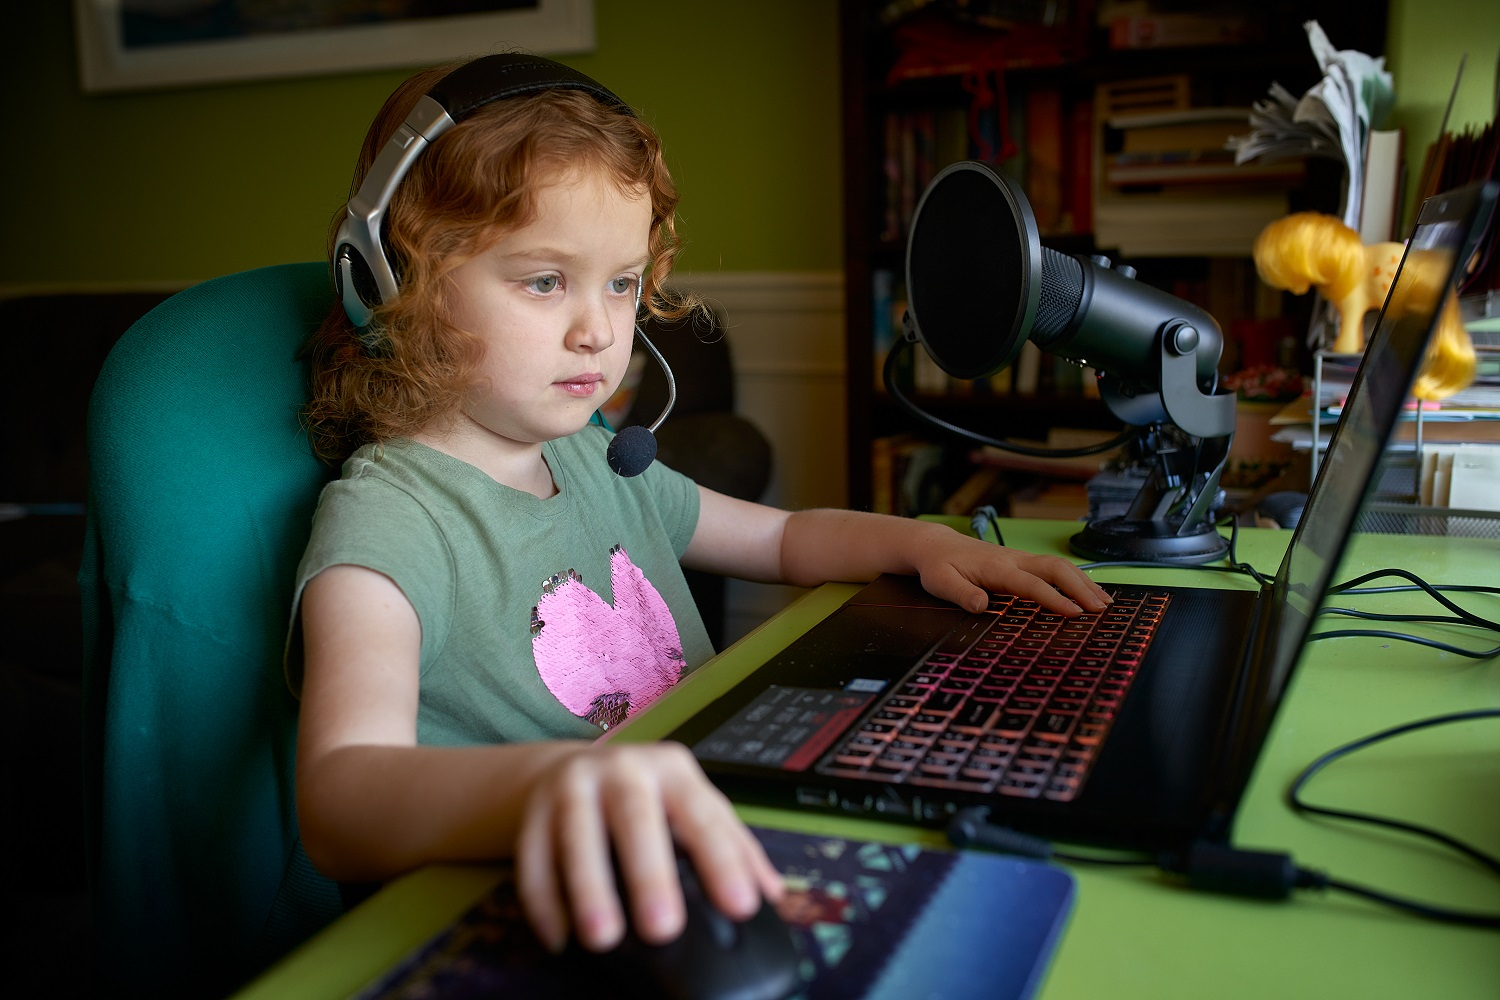 'Classroom to Cloud': What happened when coronavirus forced my kid's school to go online